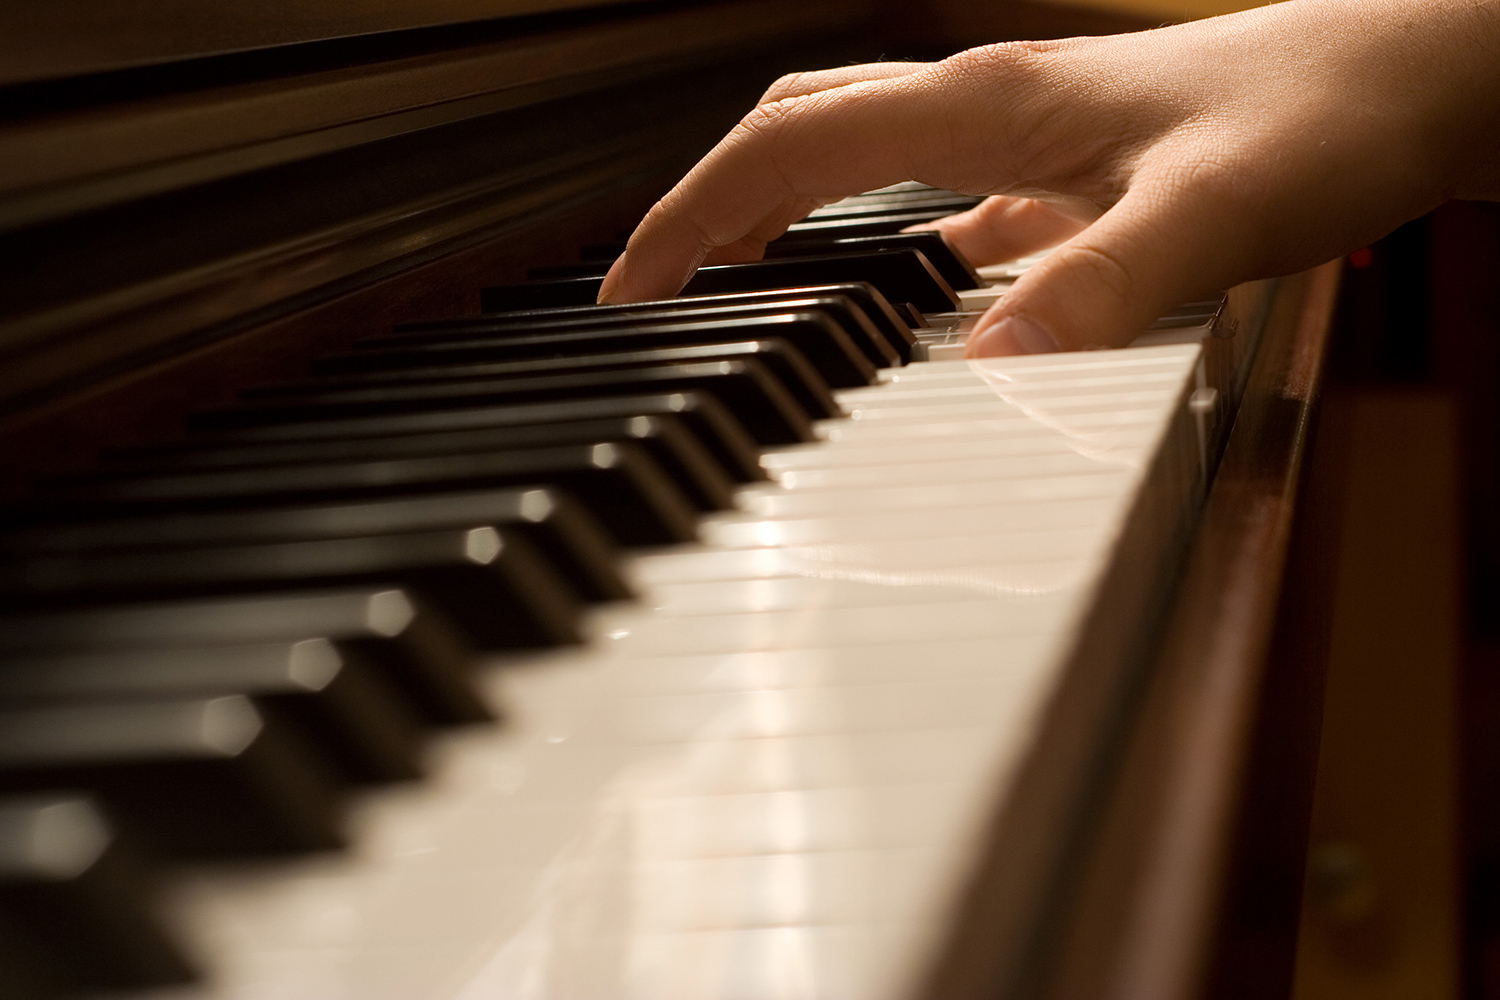 Best private piano teacher in Singapore - Adeline Yeo Piano Studio